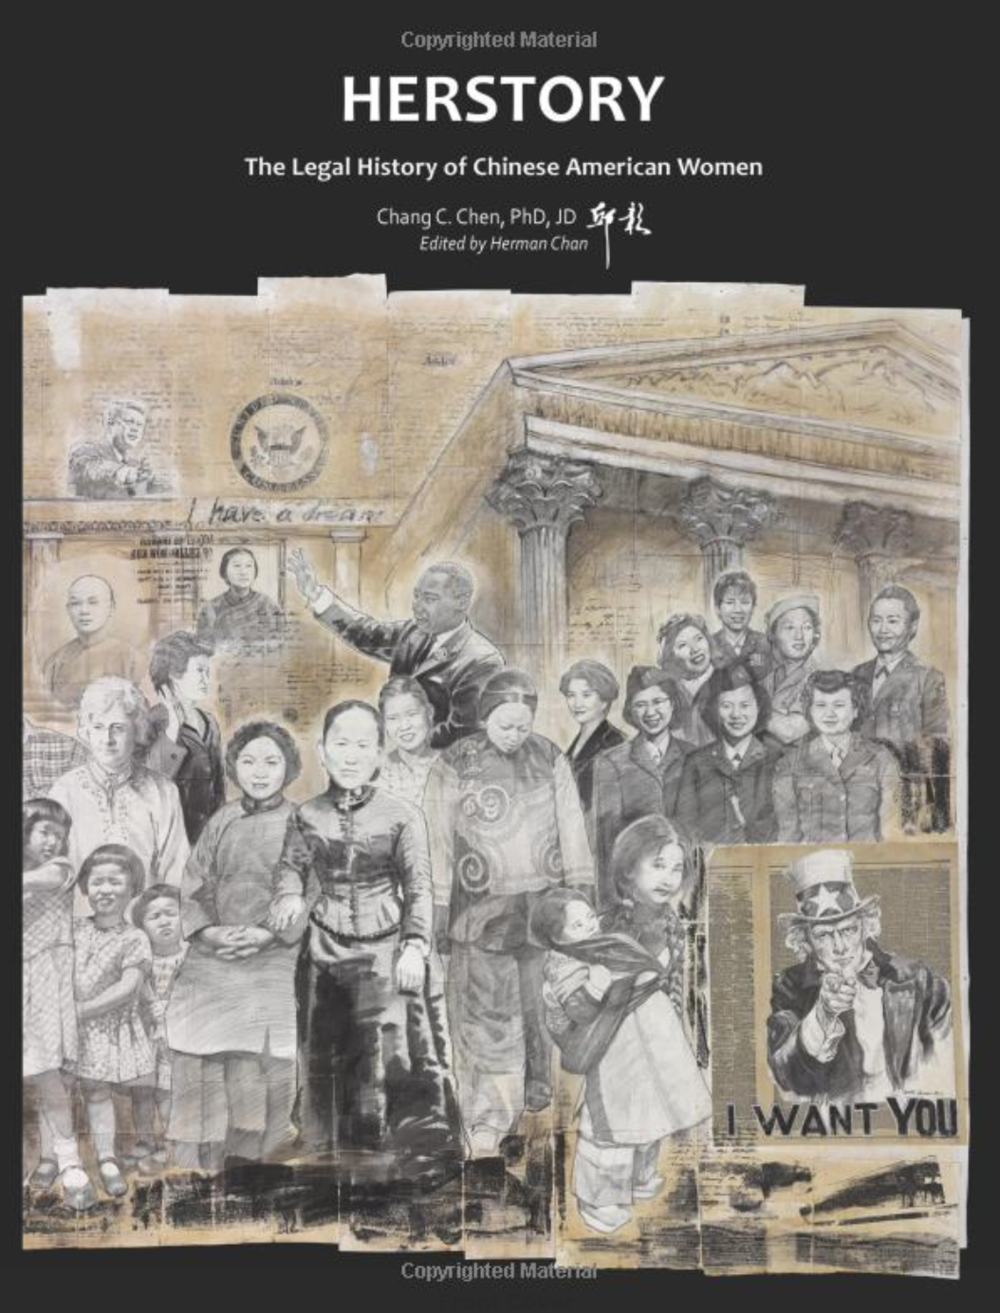 Herstory: The Legal History of Chinese American Women